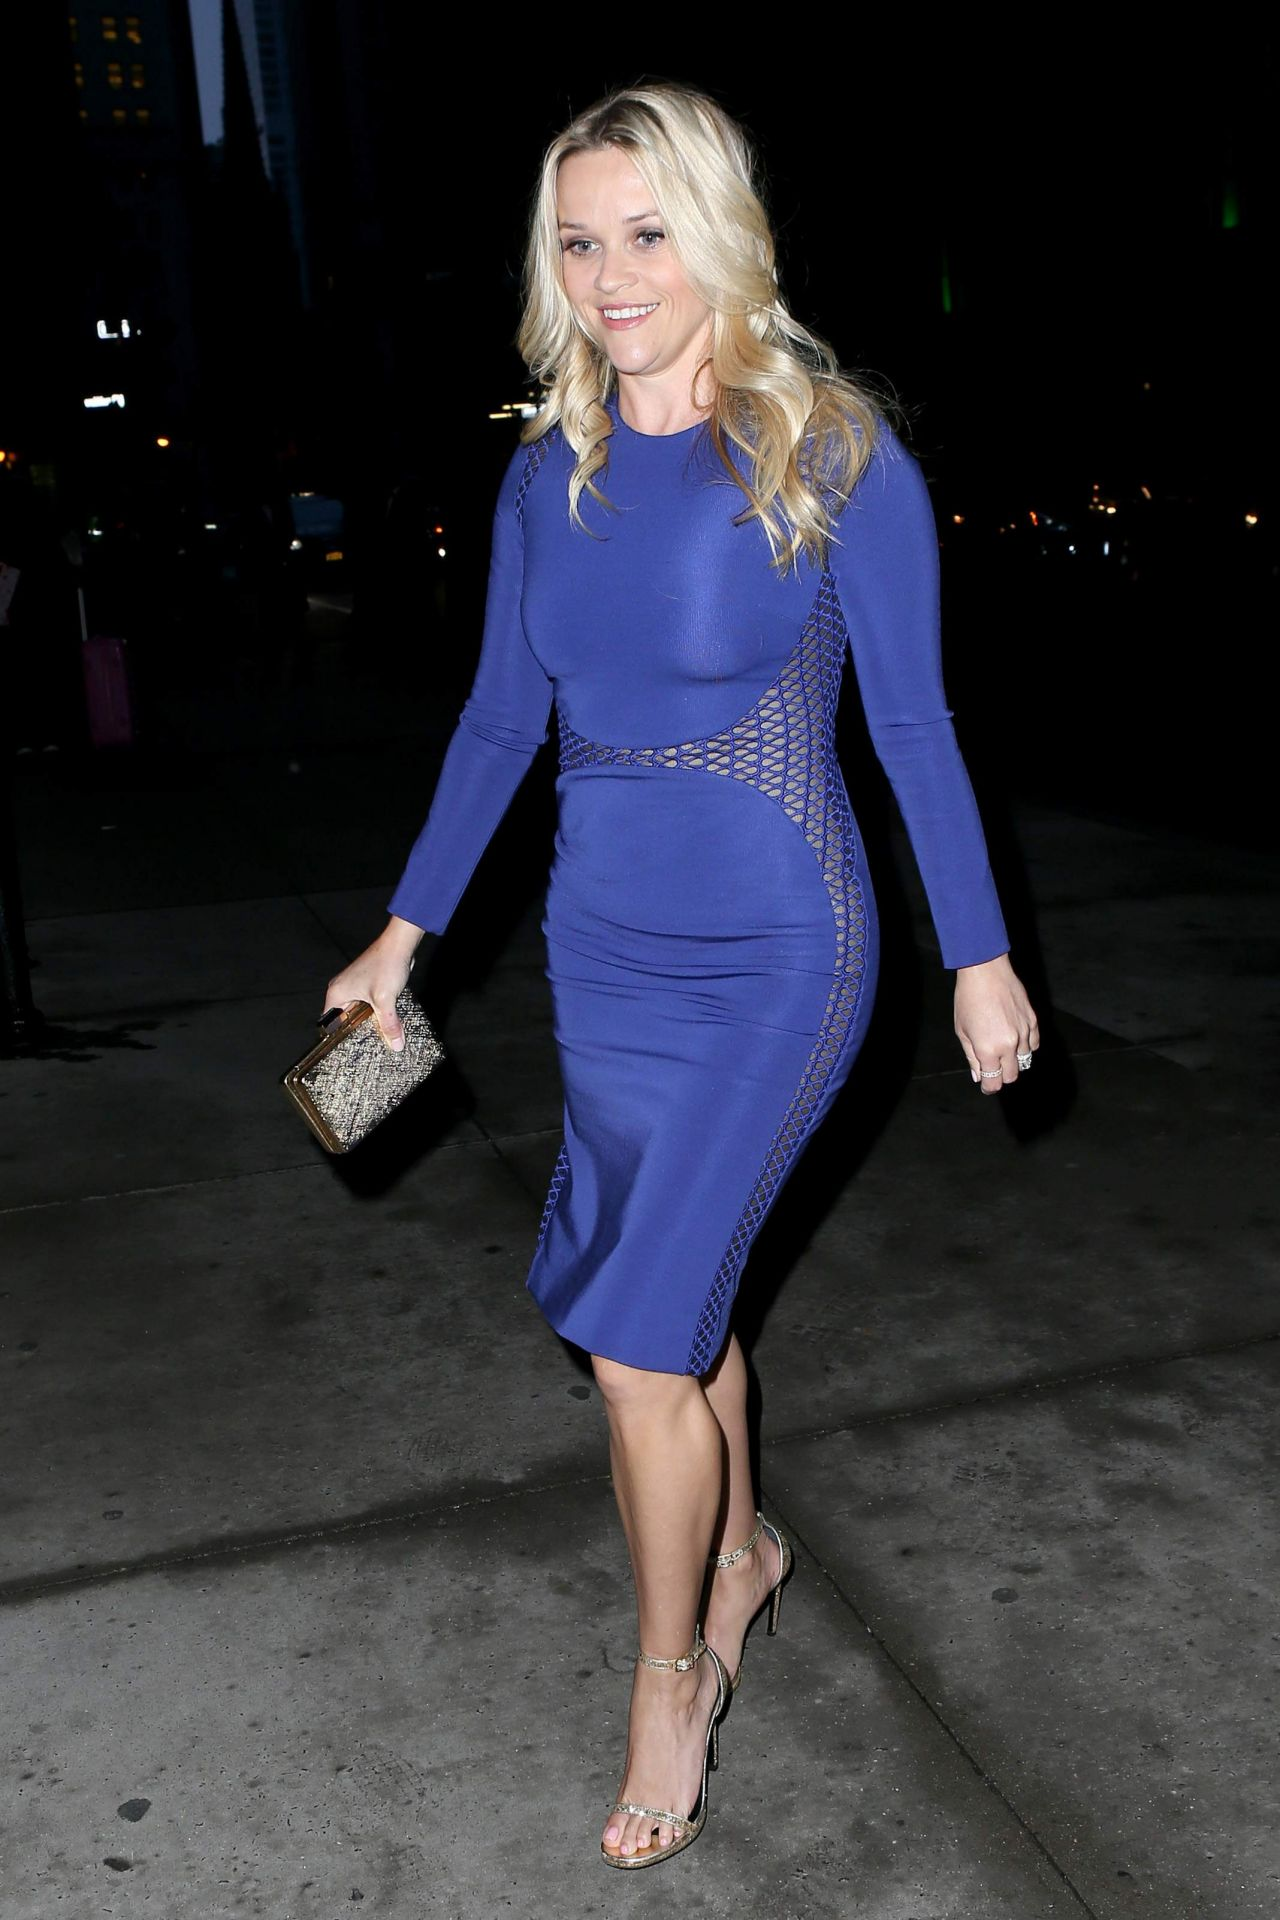 Reese Witherspoon - Stand Up To Cancer' Event in New York ... | 1280 x 1920 jpeg 233kB